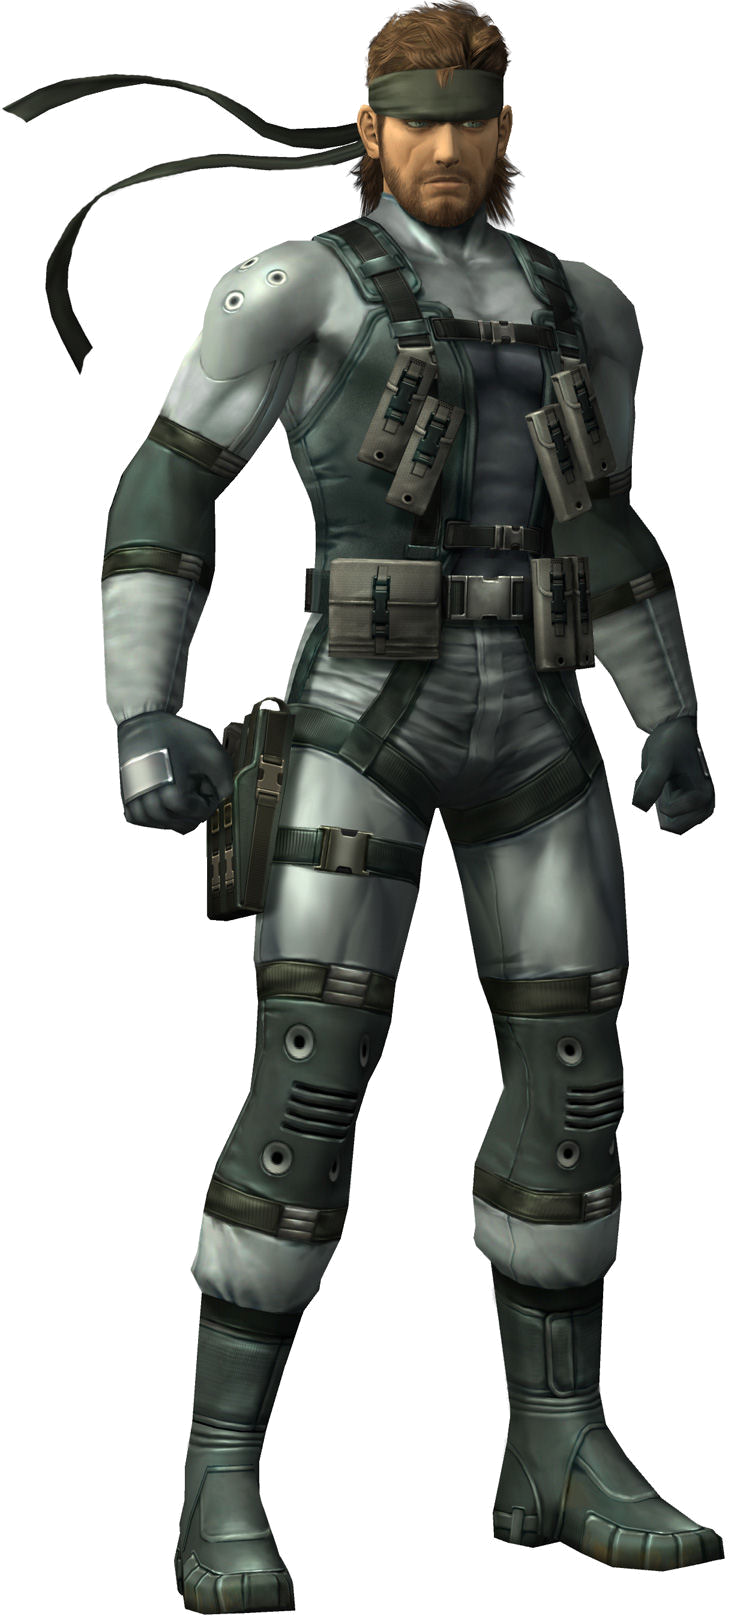 Image result for Solid snake